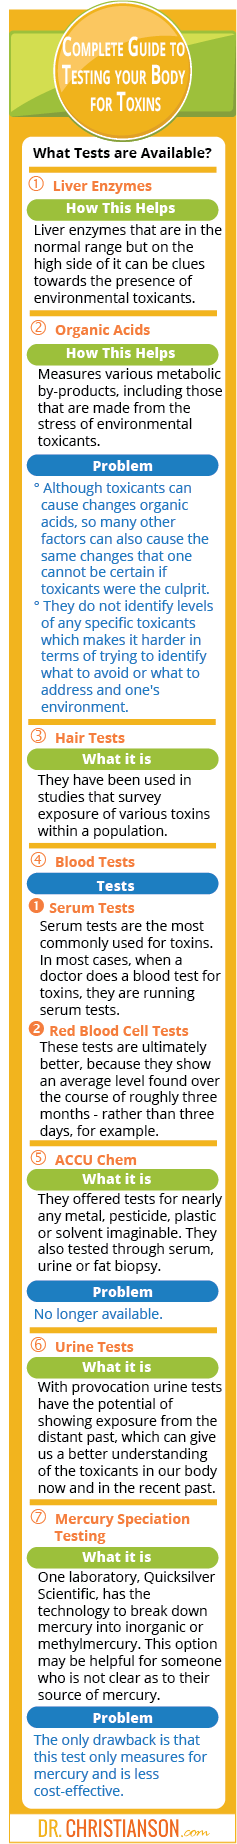 toxicology-testing-yellow-background